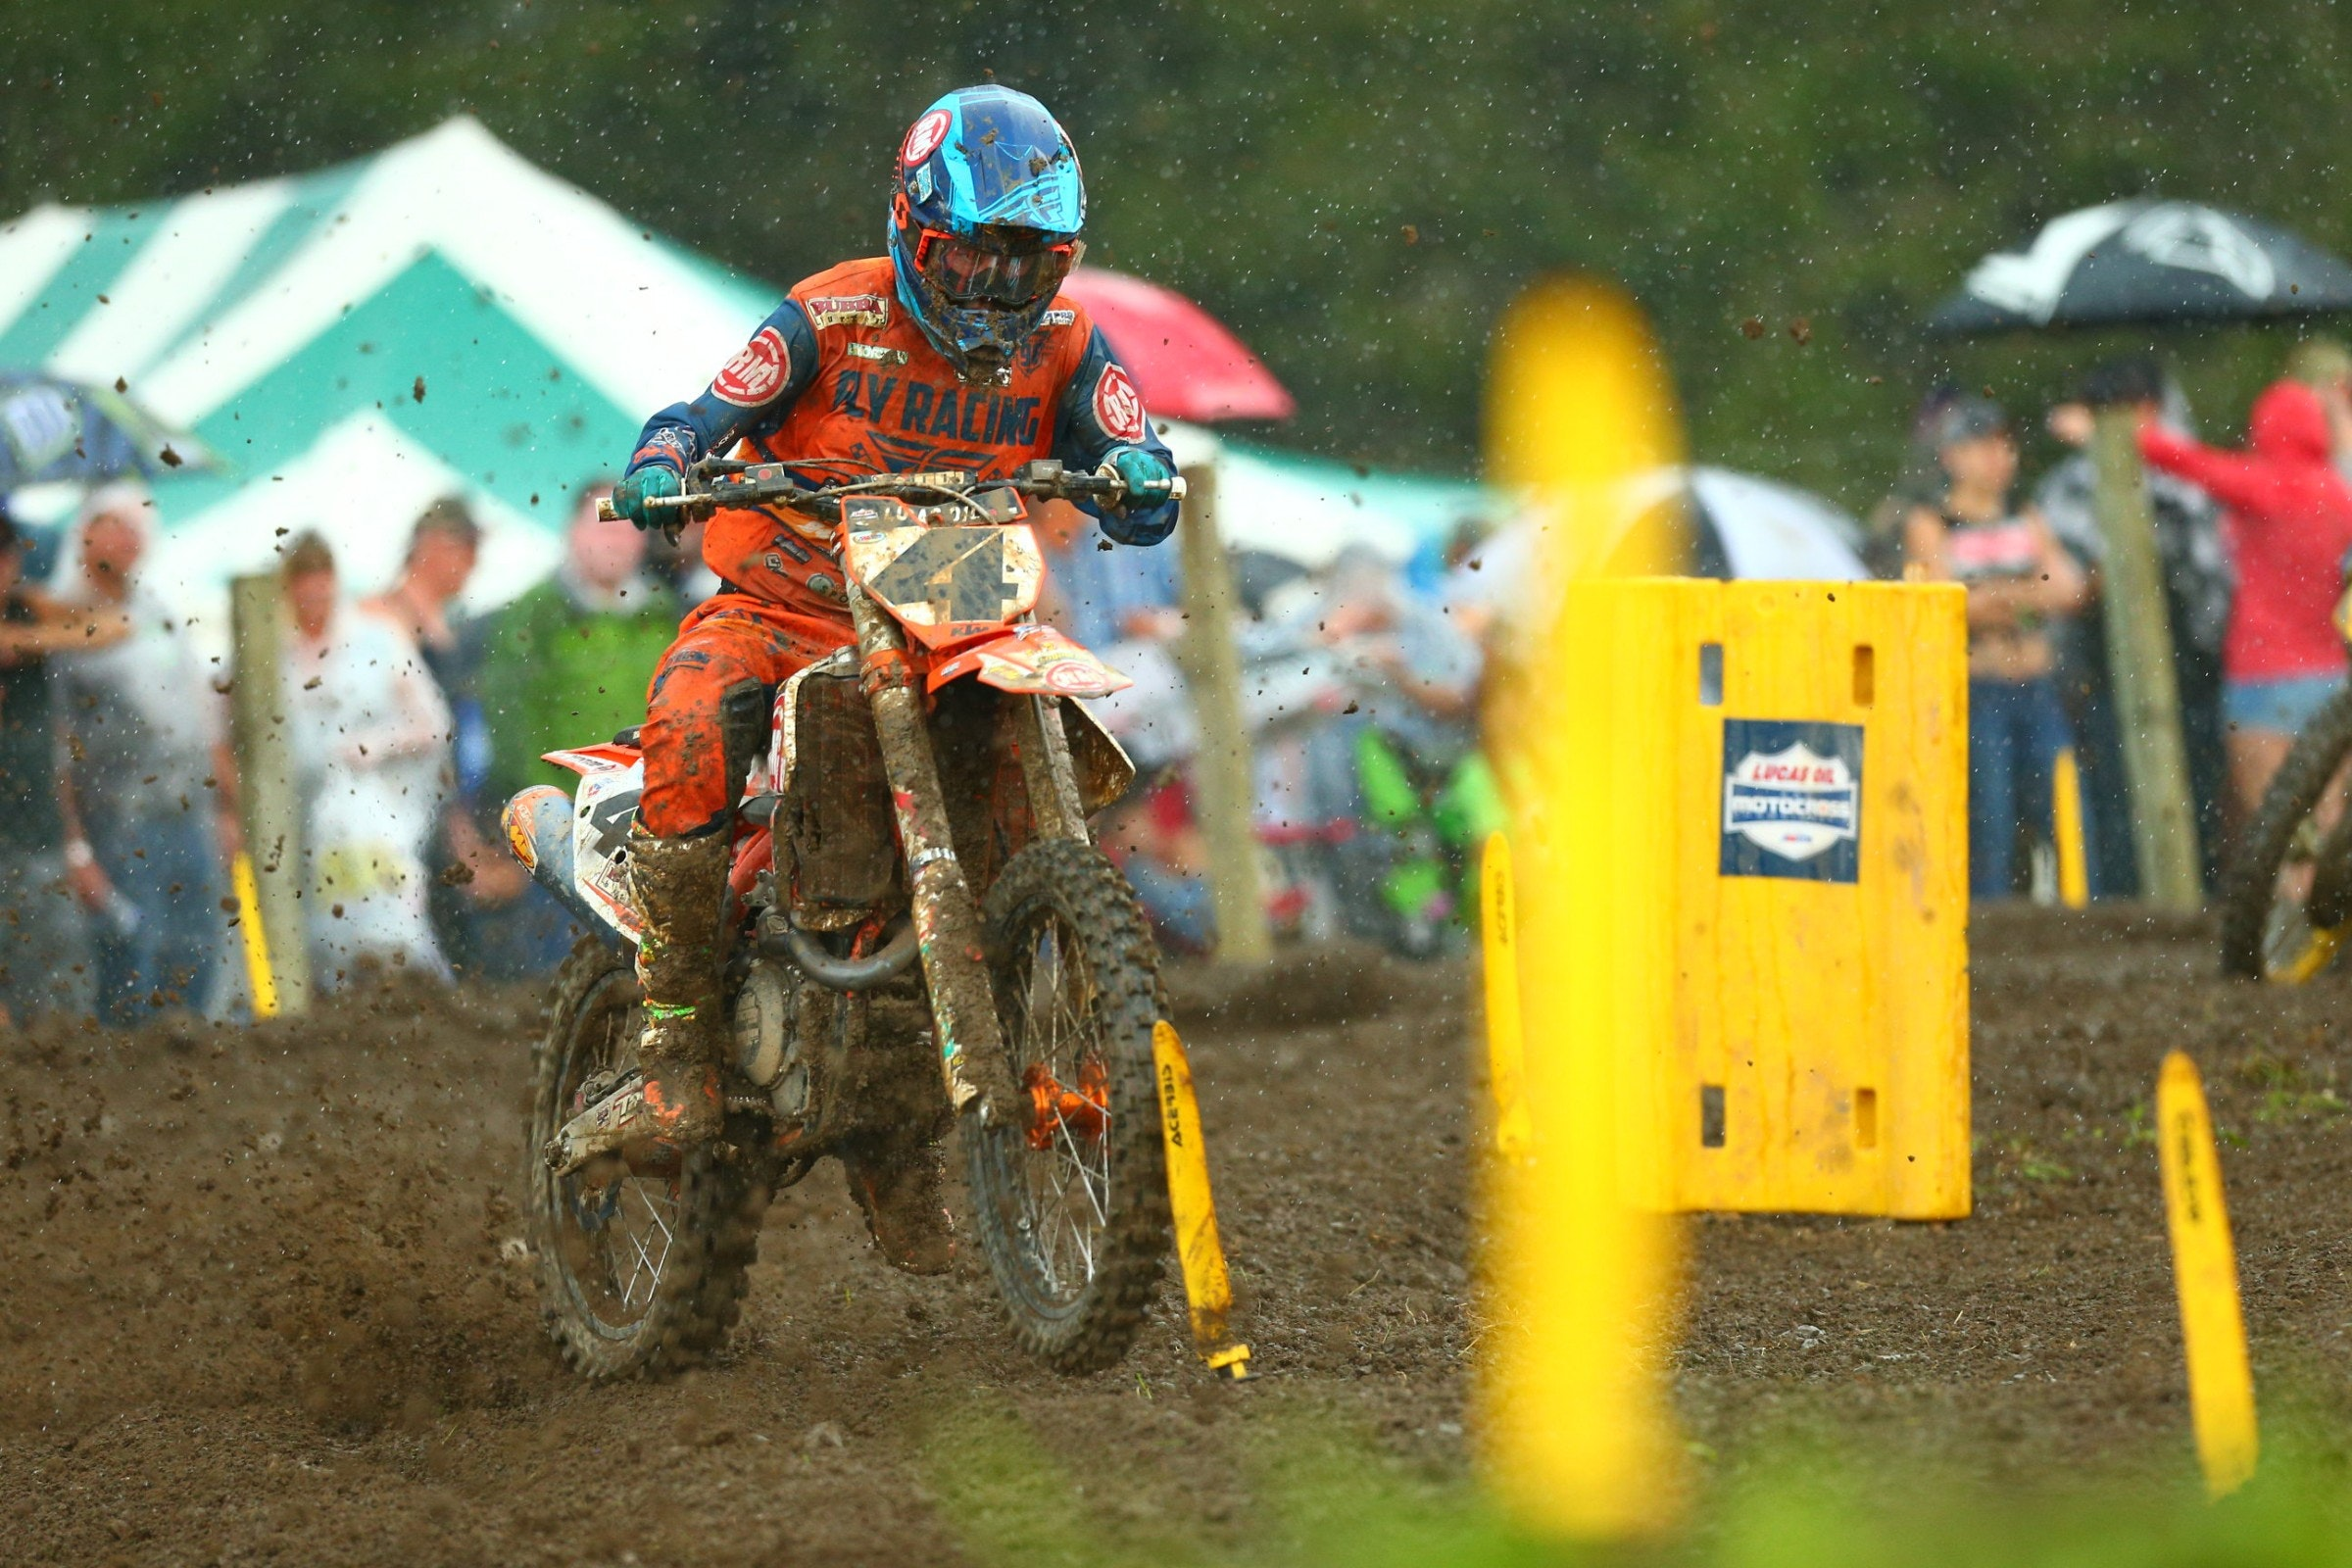 Baggett dug deep to challenge Musquin in moto one, but couldn't find the magic again in moto two.